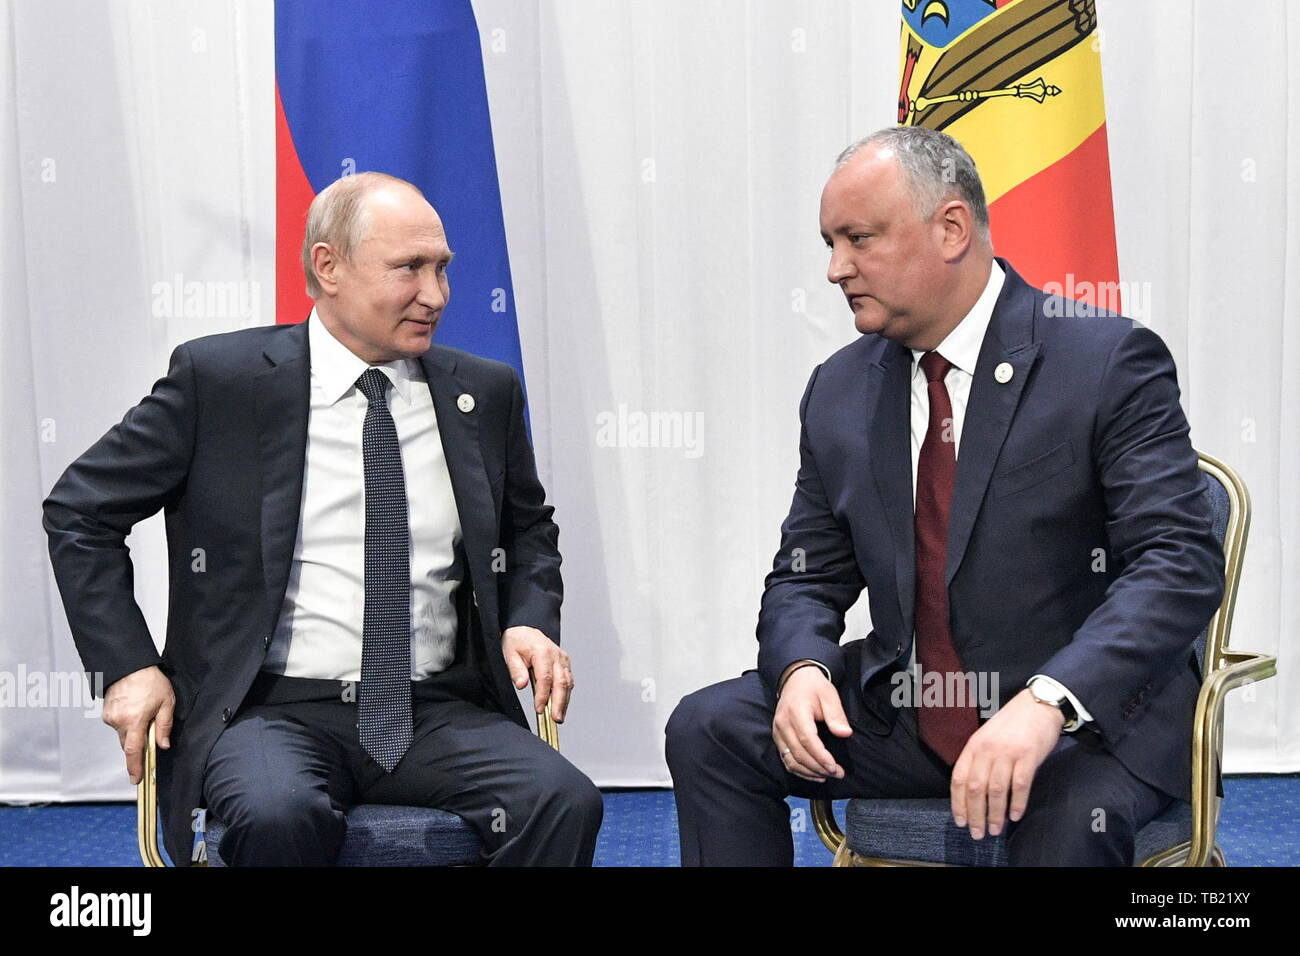 Nur Sultan, Kazakhstan. 29th May, 2019. NUR-SULTAN, KAZAKHSTAN - MAY 29, 2019: Russia's President Vladimir Putin (L) meets with Moldova's President Igor Dodon following an extended meeting of the Supreme Eurasian Economic Council, at the Palace of Independence. Alexei Nikolsky/Russian Presidential Press and Information Office/TASS Credit: ITAR-TASS News Agency/Alamy Live News - Stock Image